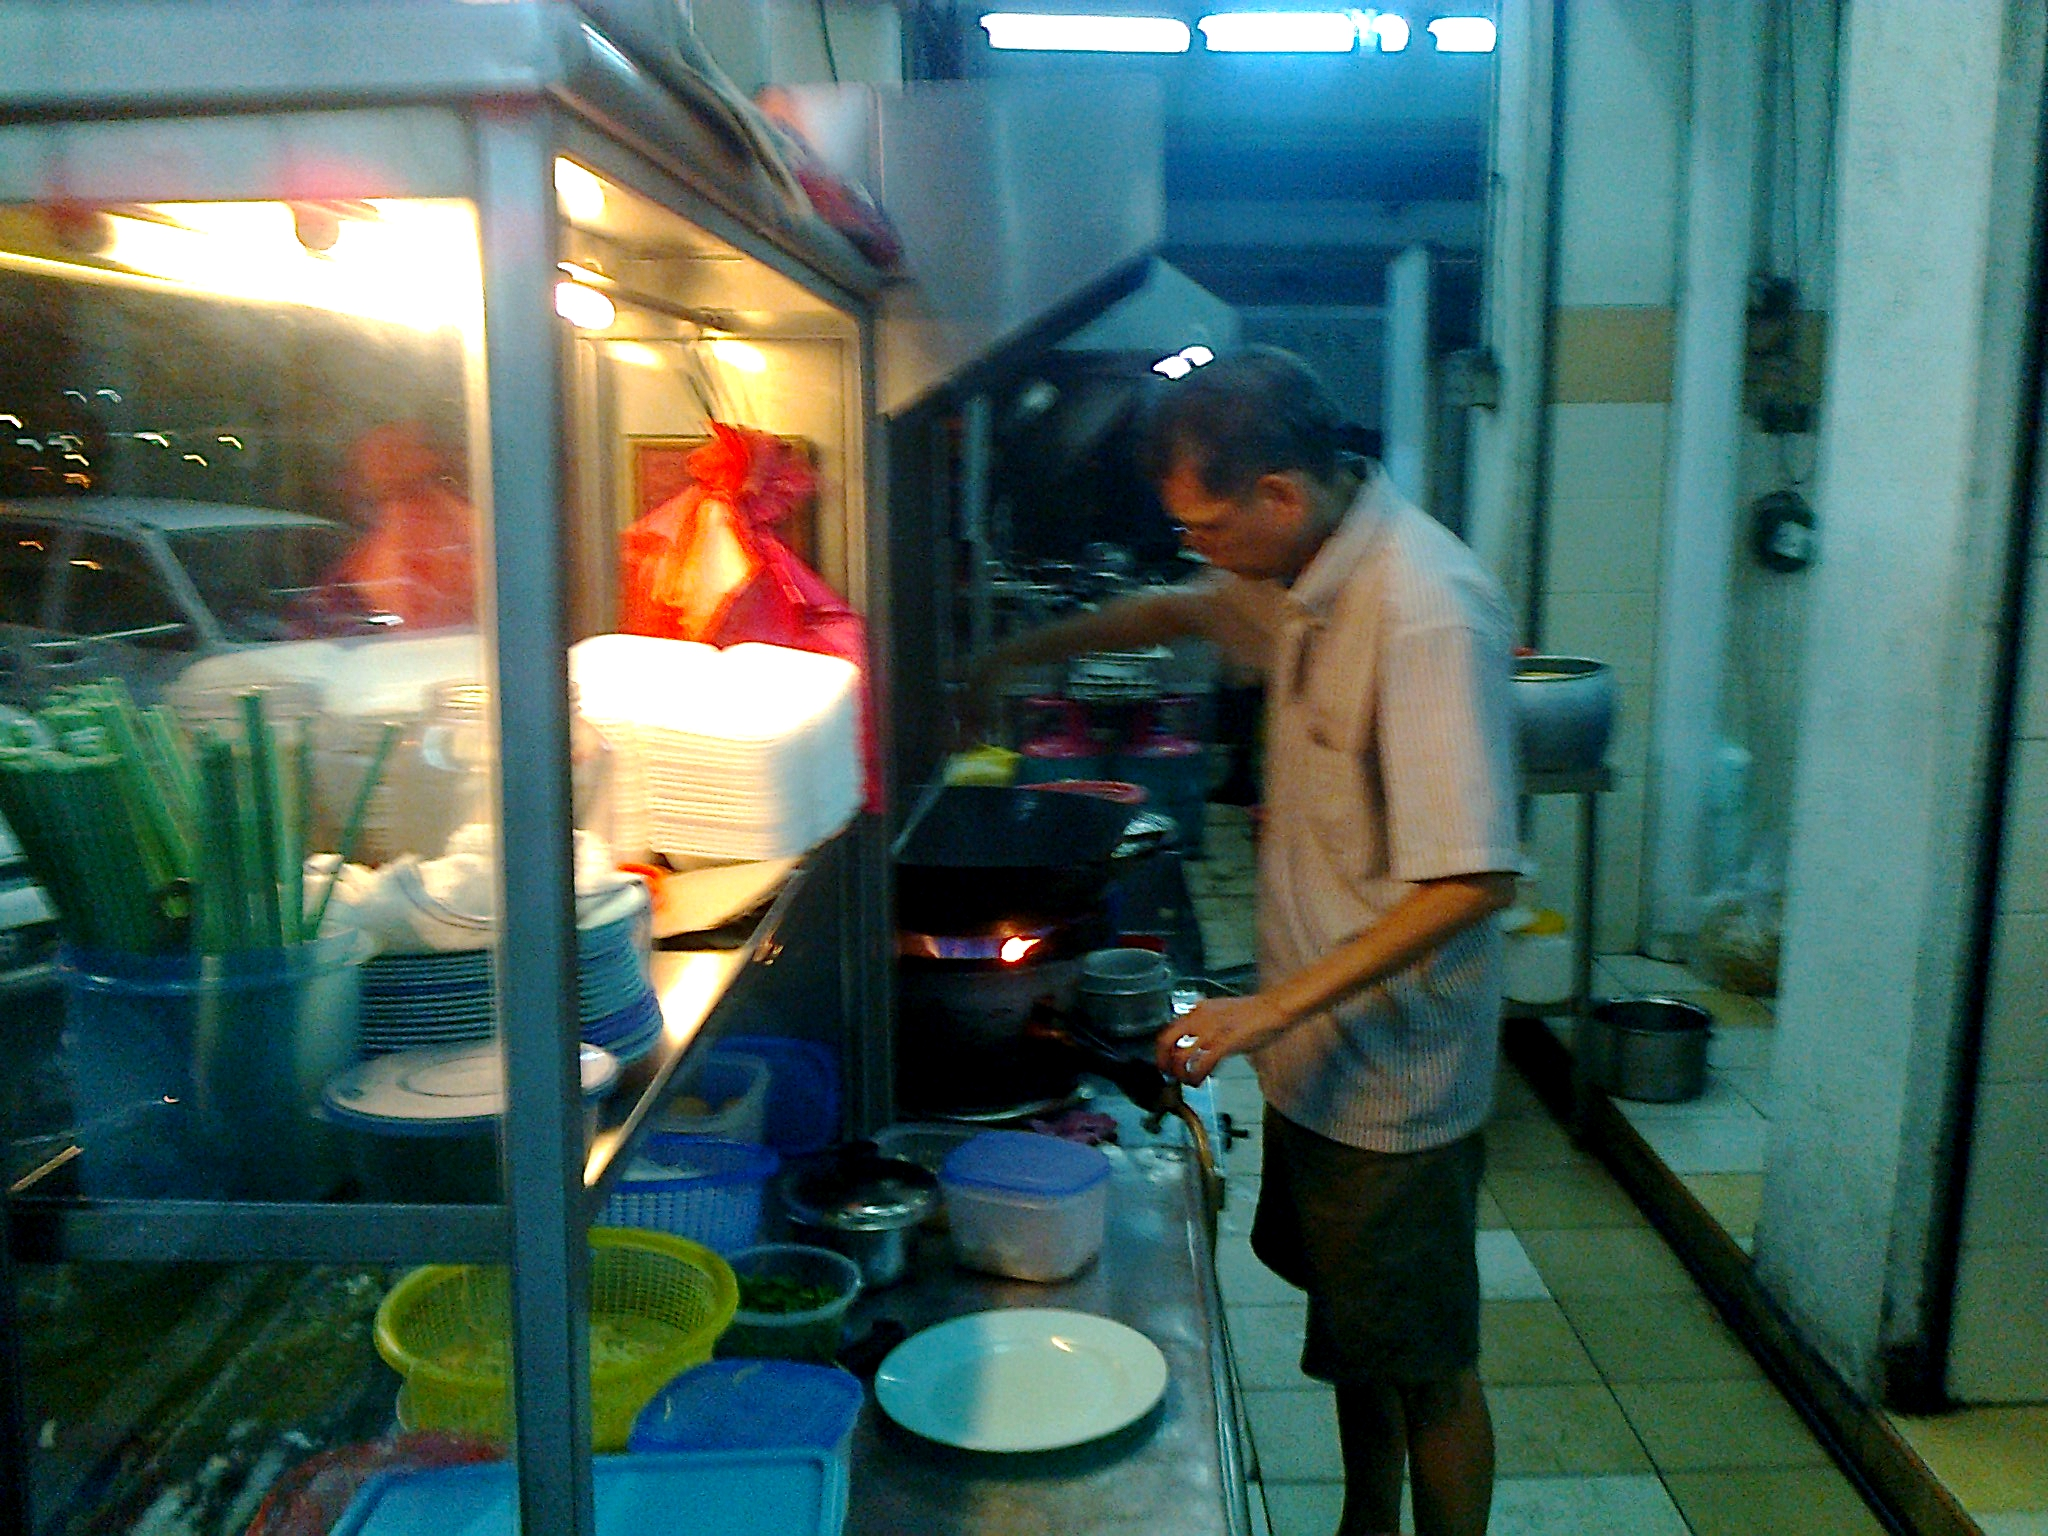 A cook making Char Kuey Teow, a type of flat noodles fried with fish cakes, cockles and bean sprouts.